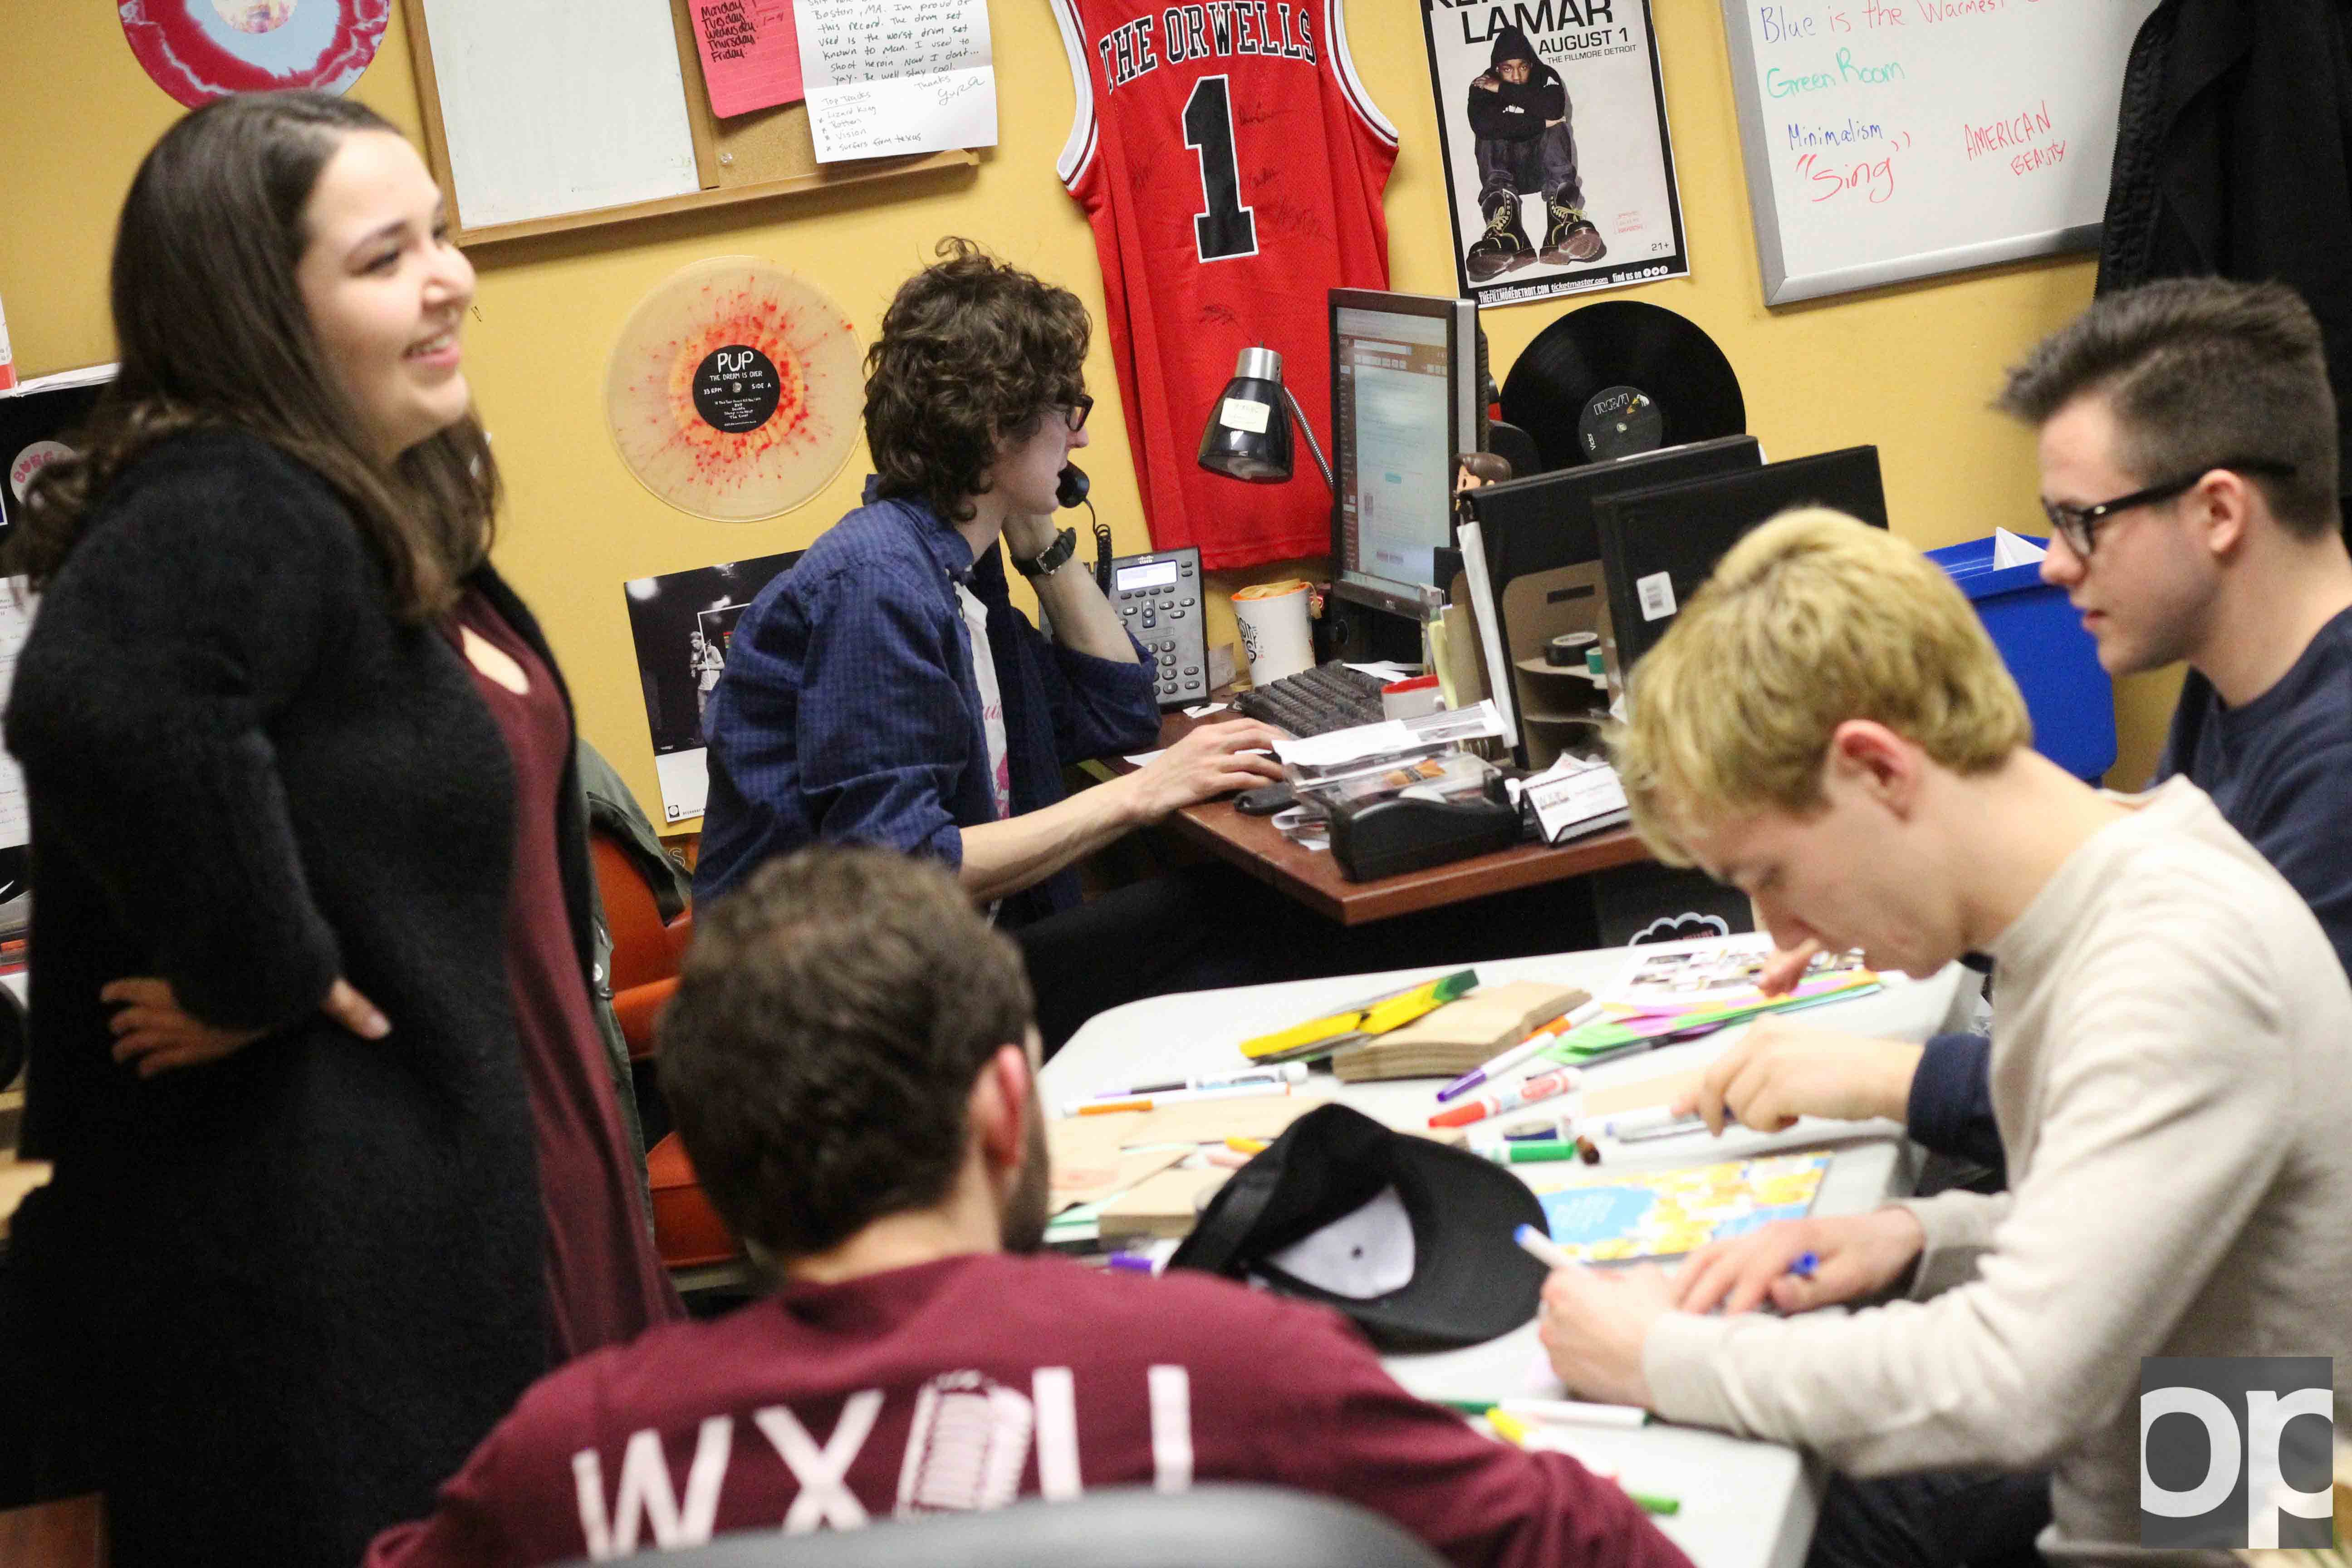 WXOU employees participate in Kindness Day activities on February 14.